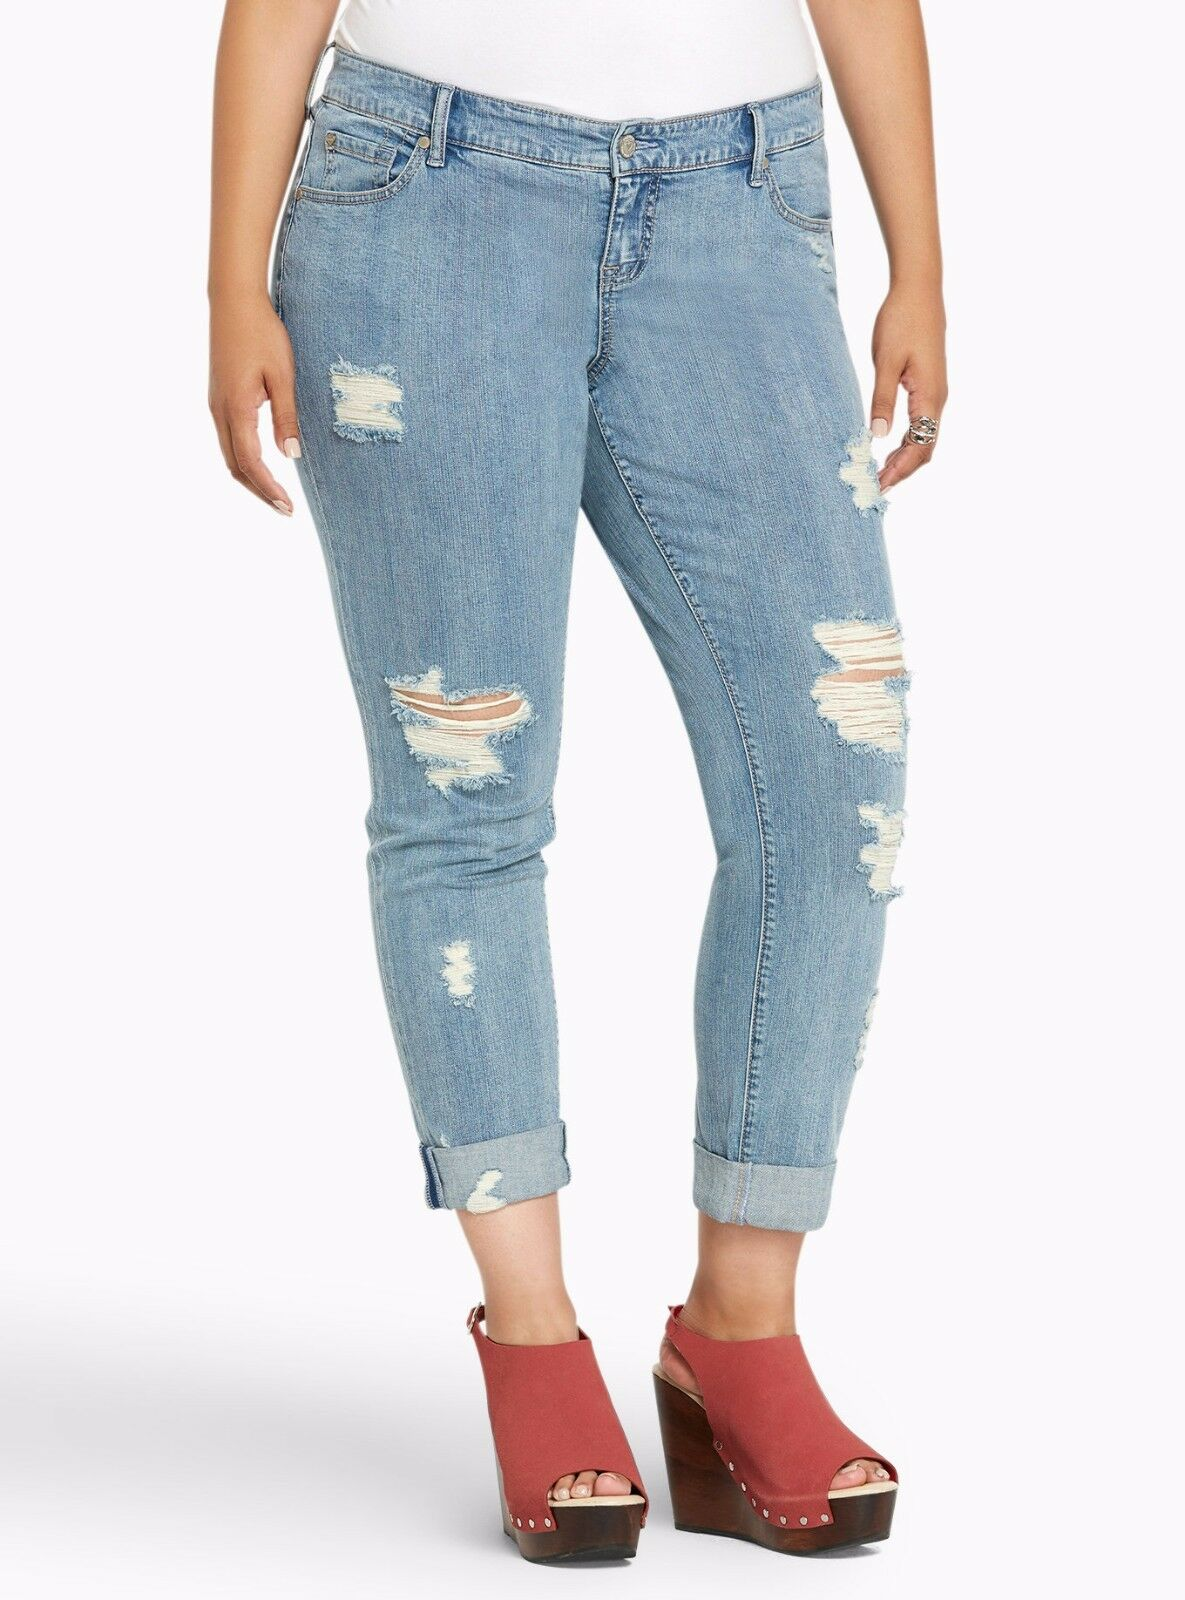 Torrid Boyfriend Cropped Capri Pants Light Ripped Destruction bluee 2X 18 2 47338